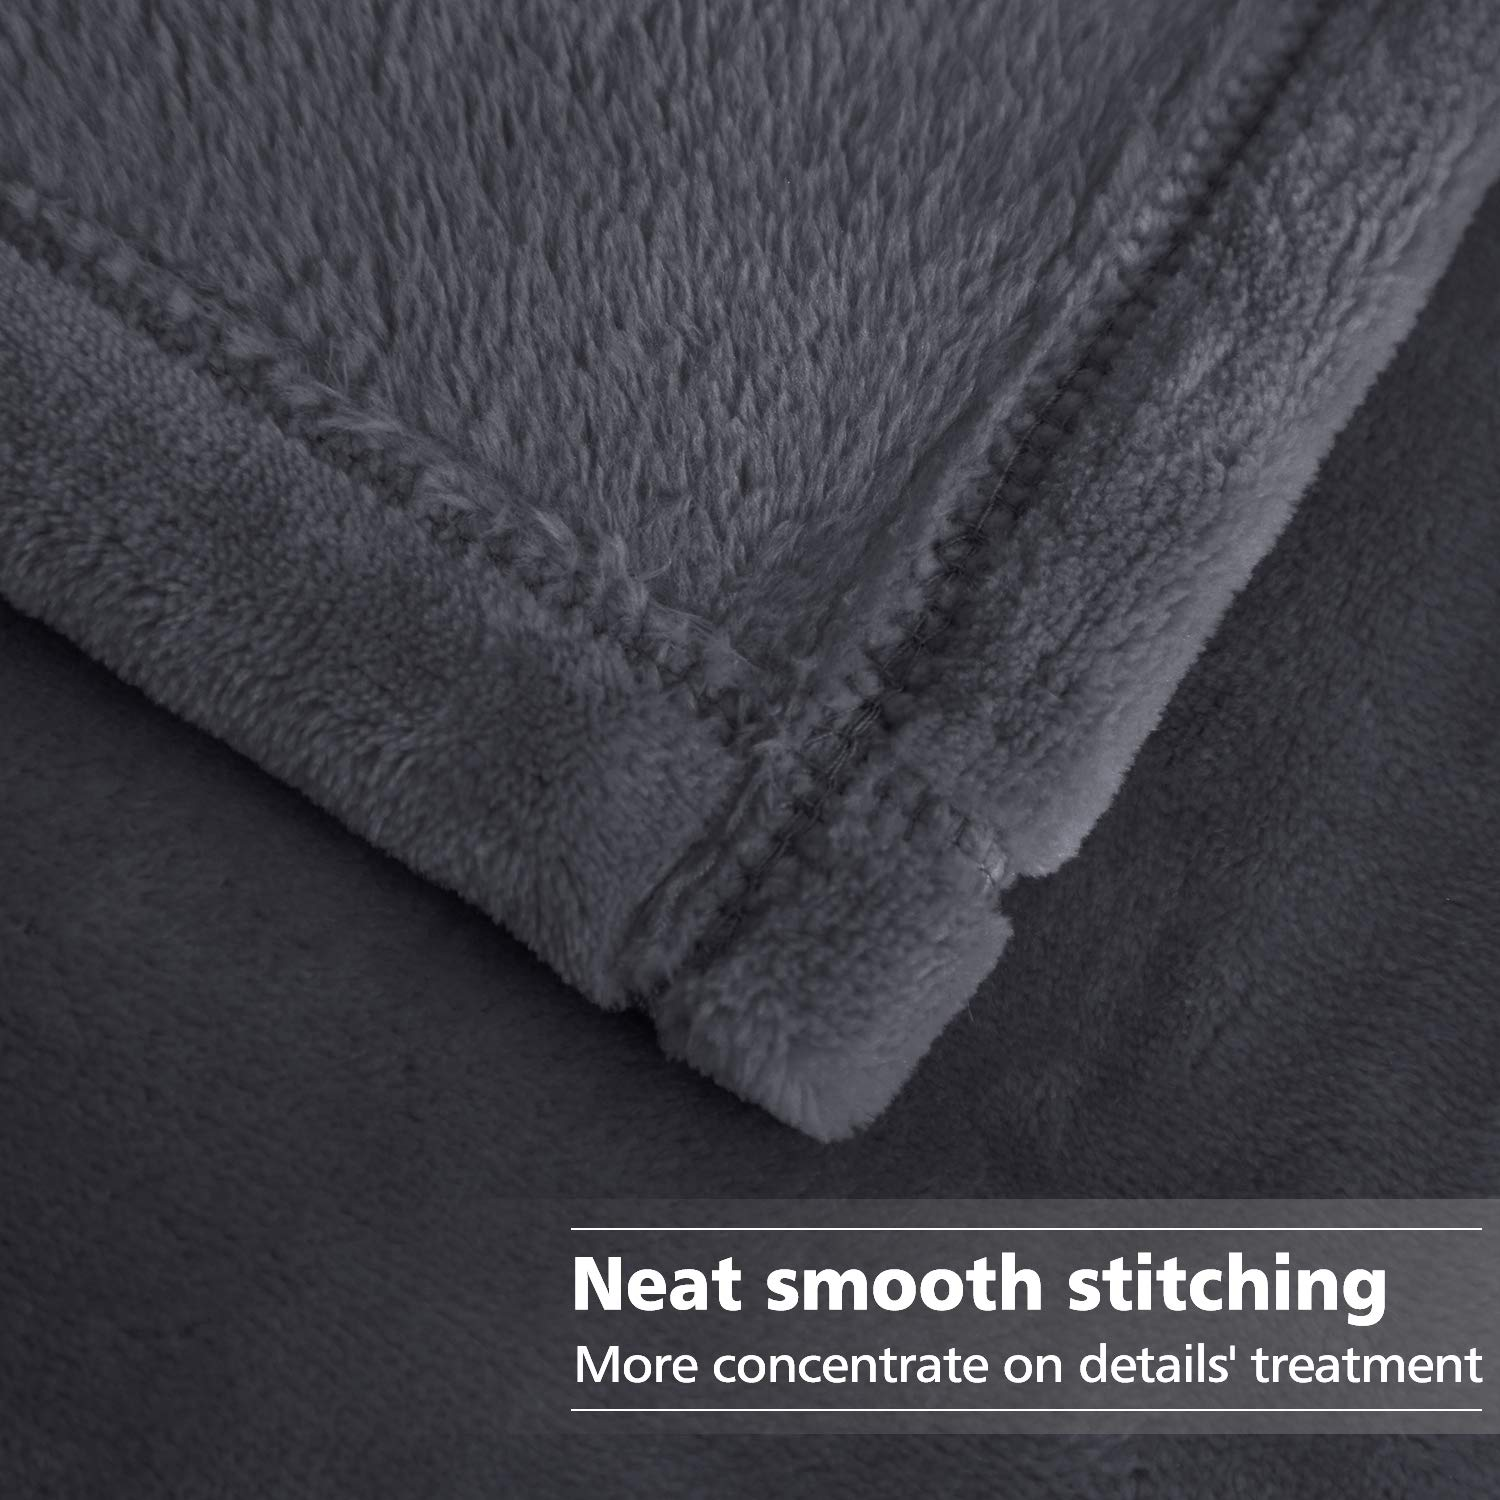 HOMEIDEAS Soft Queen Size 380GSM Lightweight Summer Blanket All Season Luxury Warm Fuzzy Microplush Fleece Blankets for Bed Sofa Couch 90 x 90 Inches,Light Gray